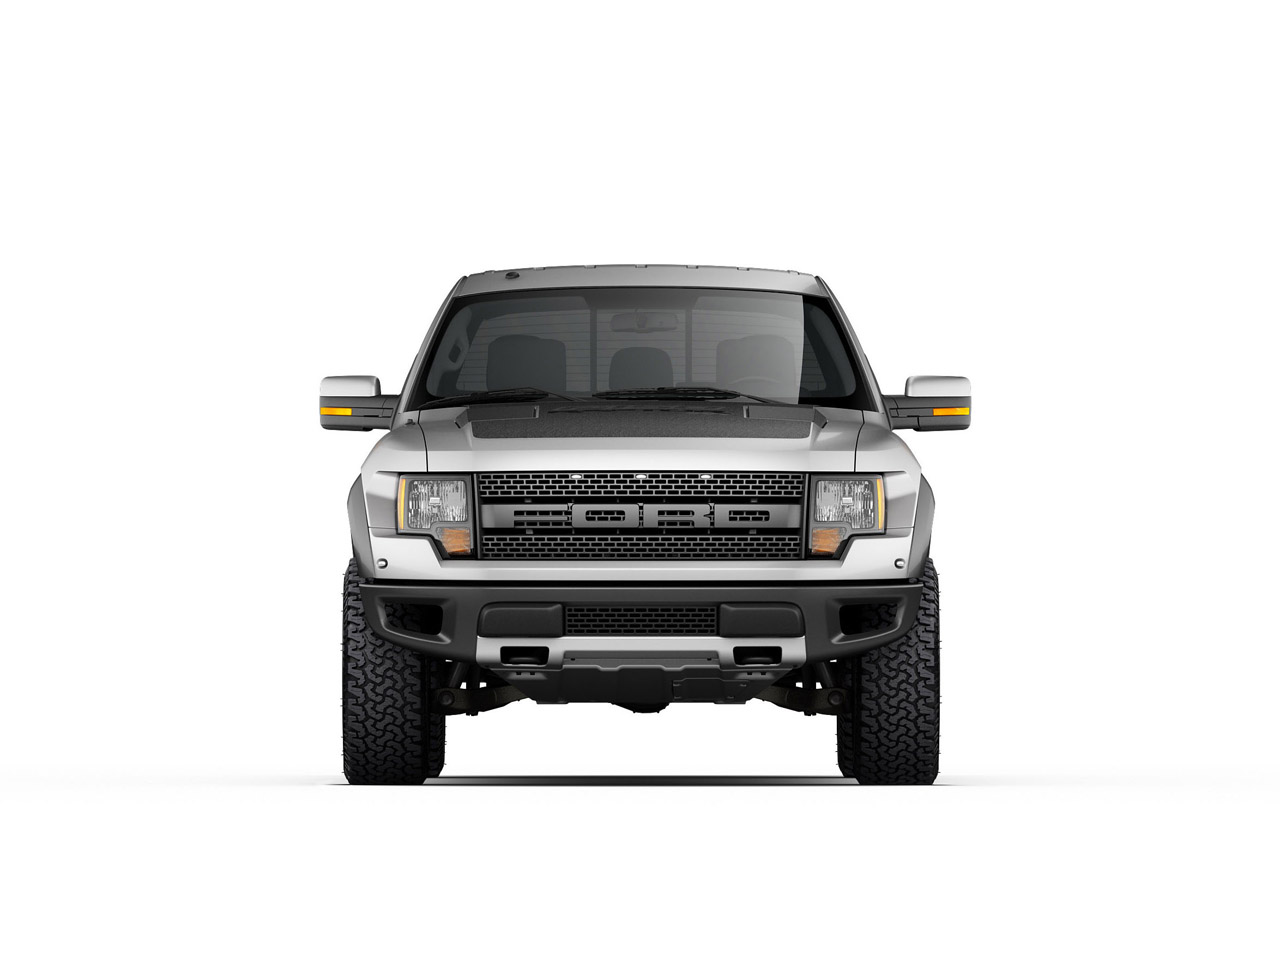 Ford Certified Pre Owned >> Ford SVT Raptor gets beadlock wheels, HIDs for 2013 - Autoblog